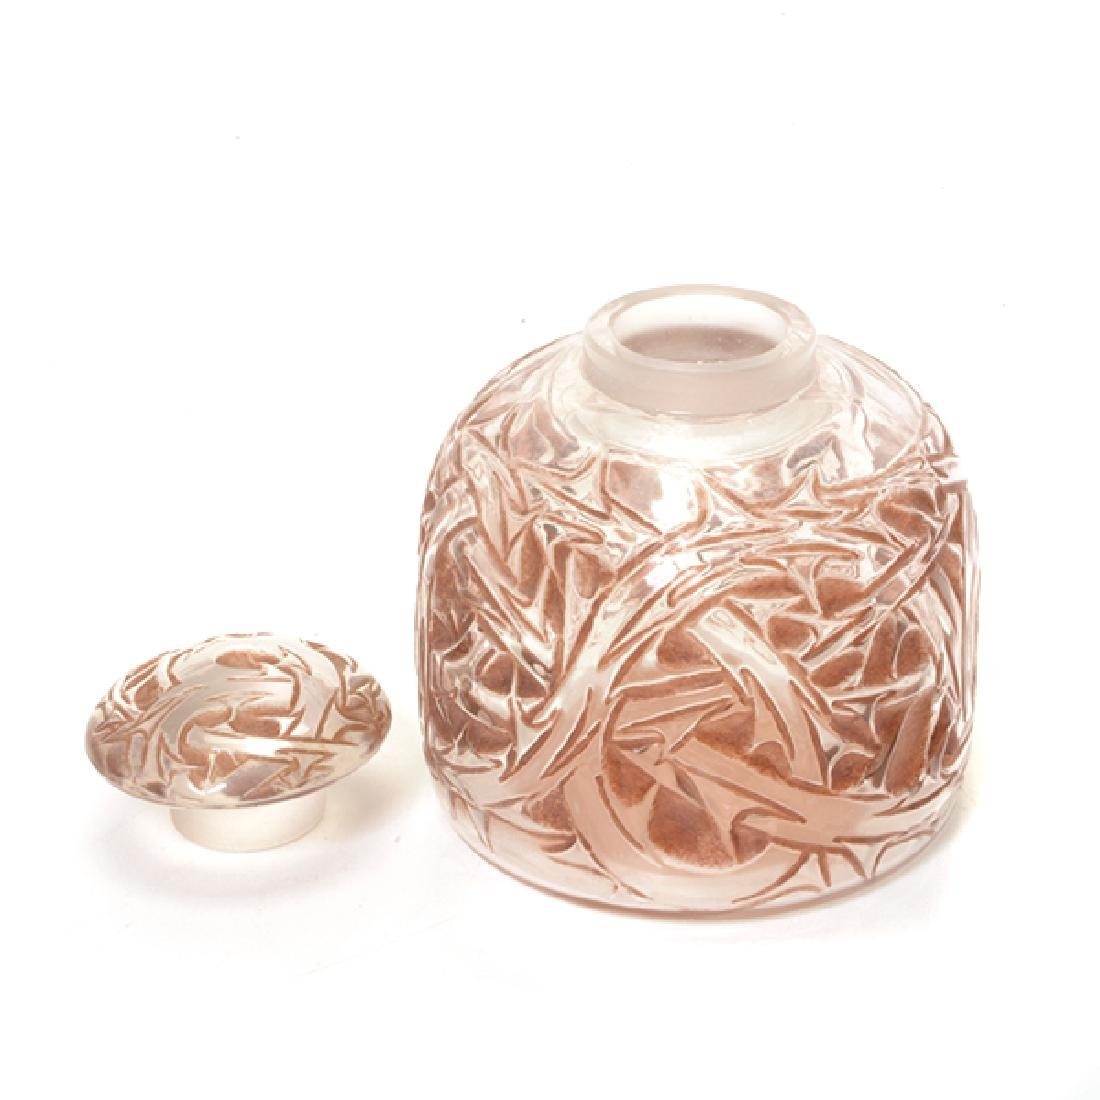 Lalique Scent Bottle and Covered Jar with Steuben - 5